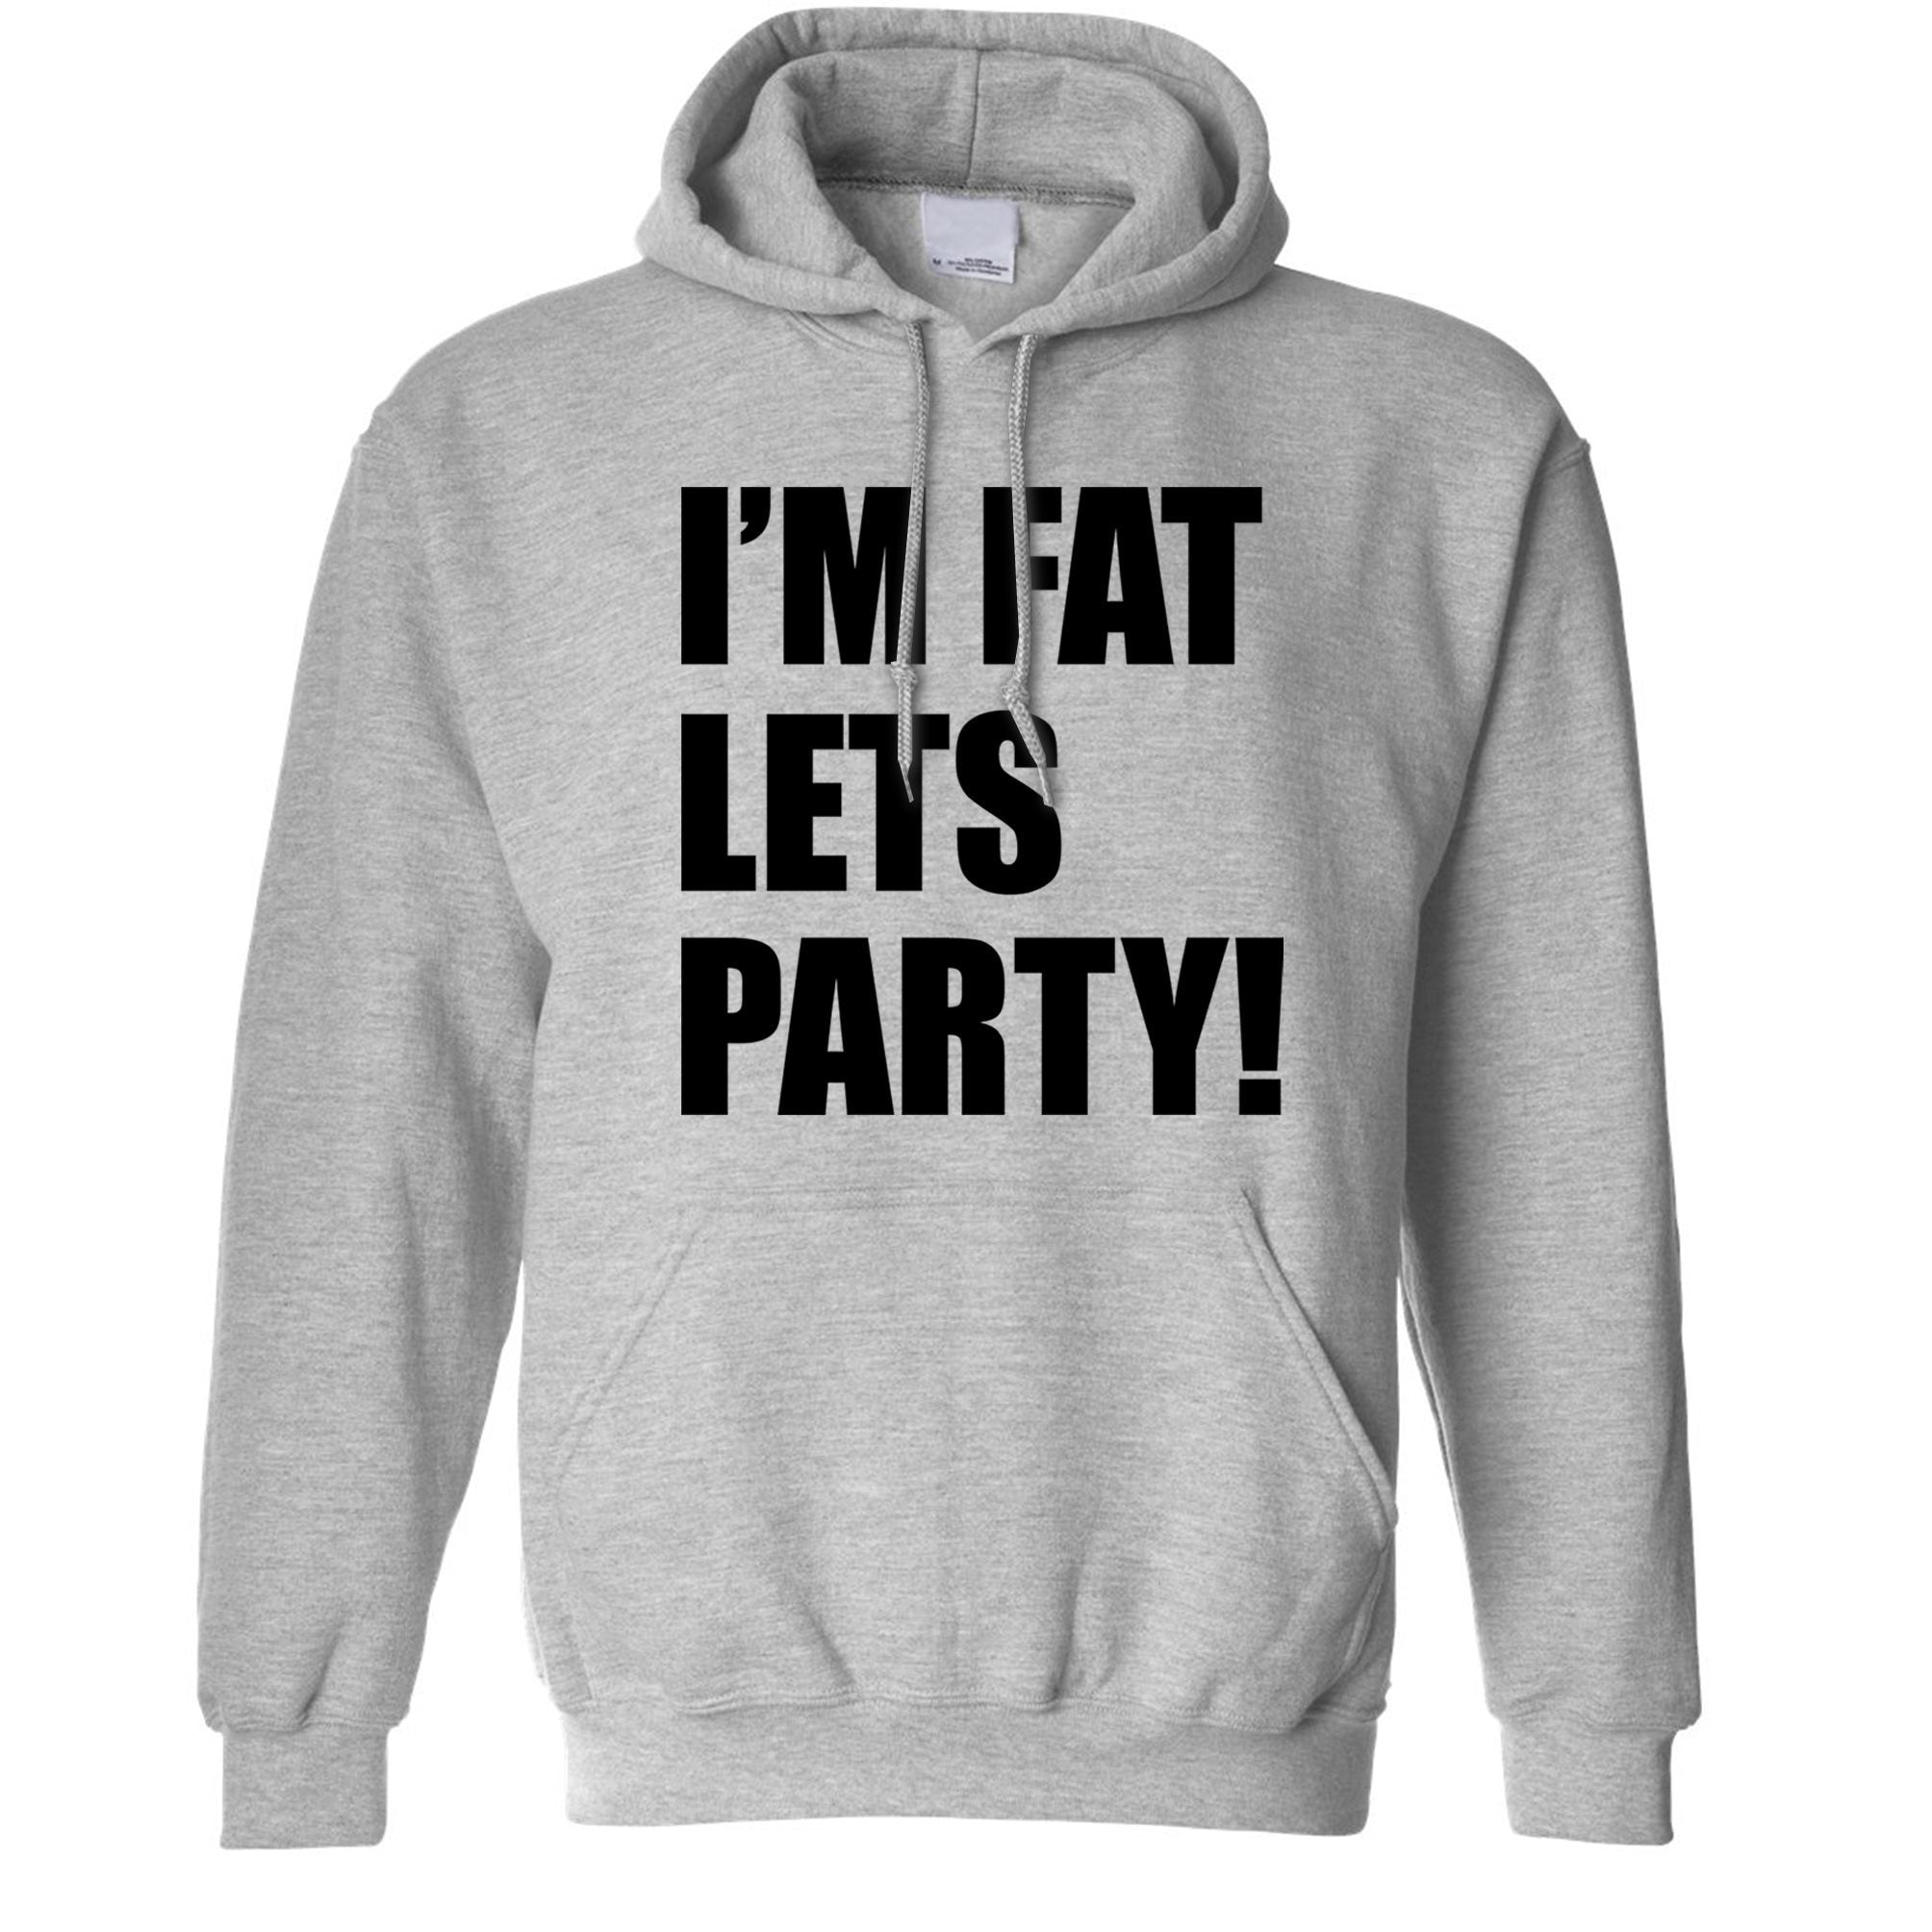 Novelty Hoodie I'm Fat, Let's Party Slogan Hooded Jumper